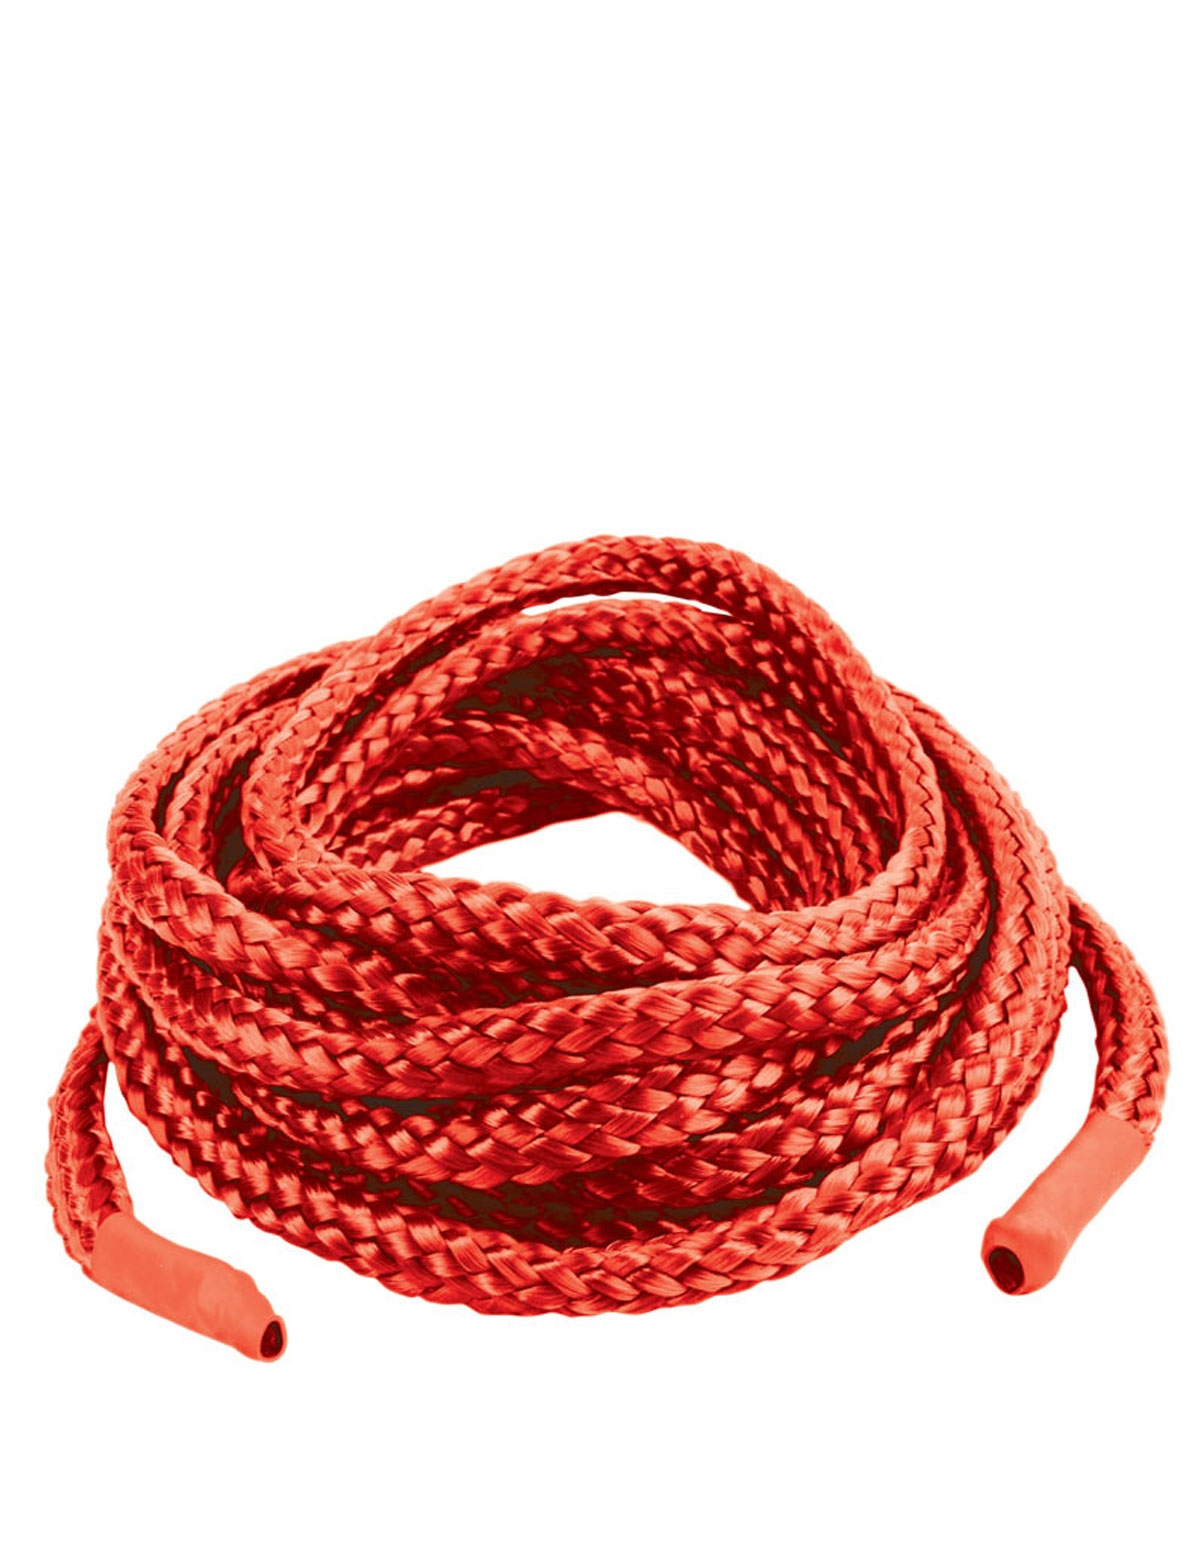 Japanese Silk Love Rope 10 Ft.